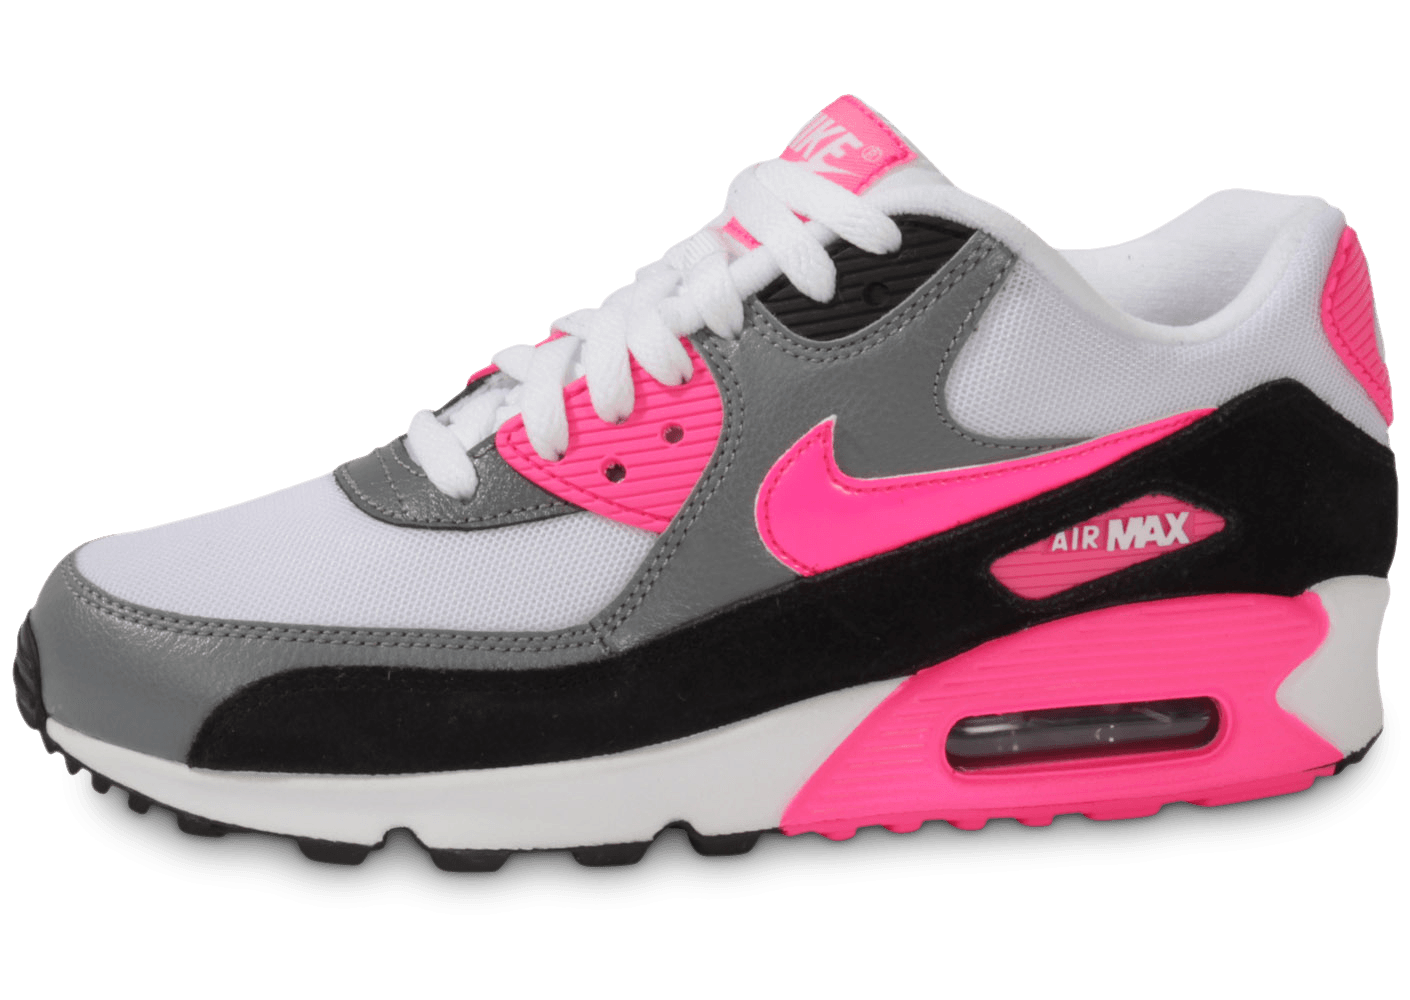 Nike Air Max 90 Essential Blanche Rose - Chaussures Chaussures ...